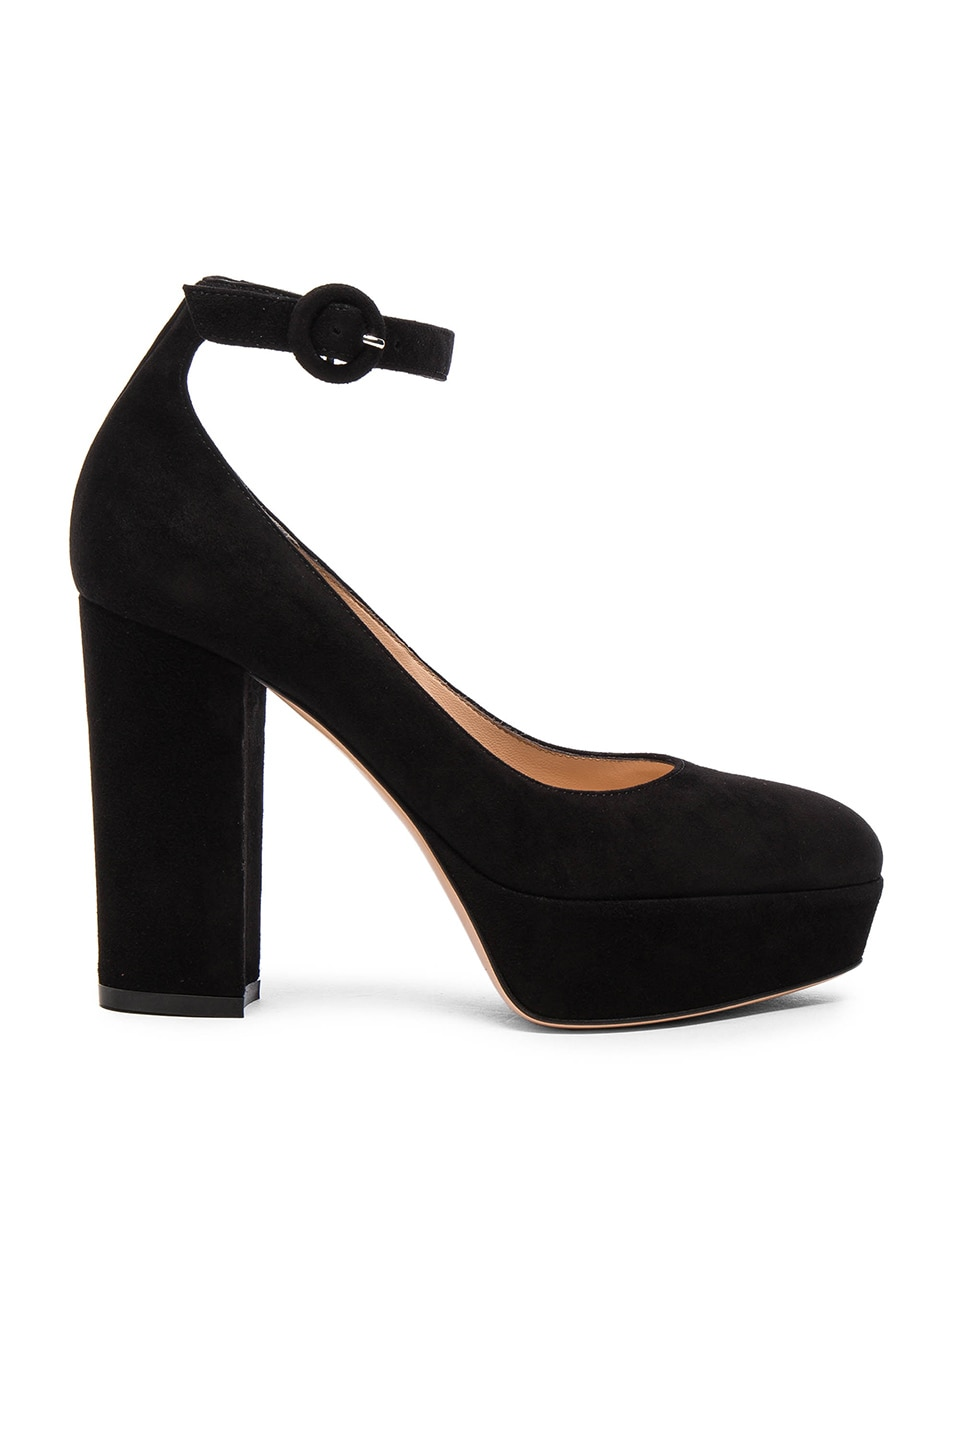 Image 1 of Gianvito Rossi Suede Mary Jane Pumps in Black